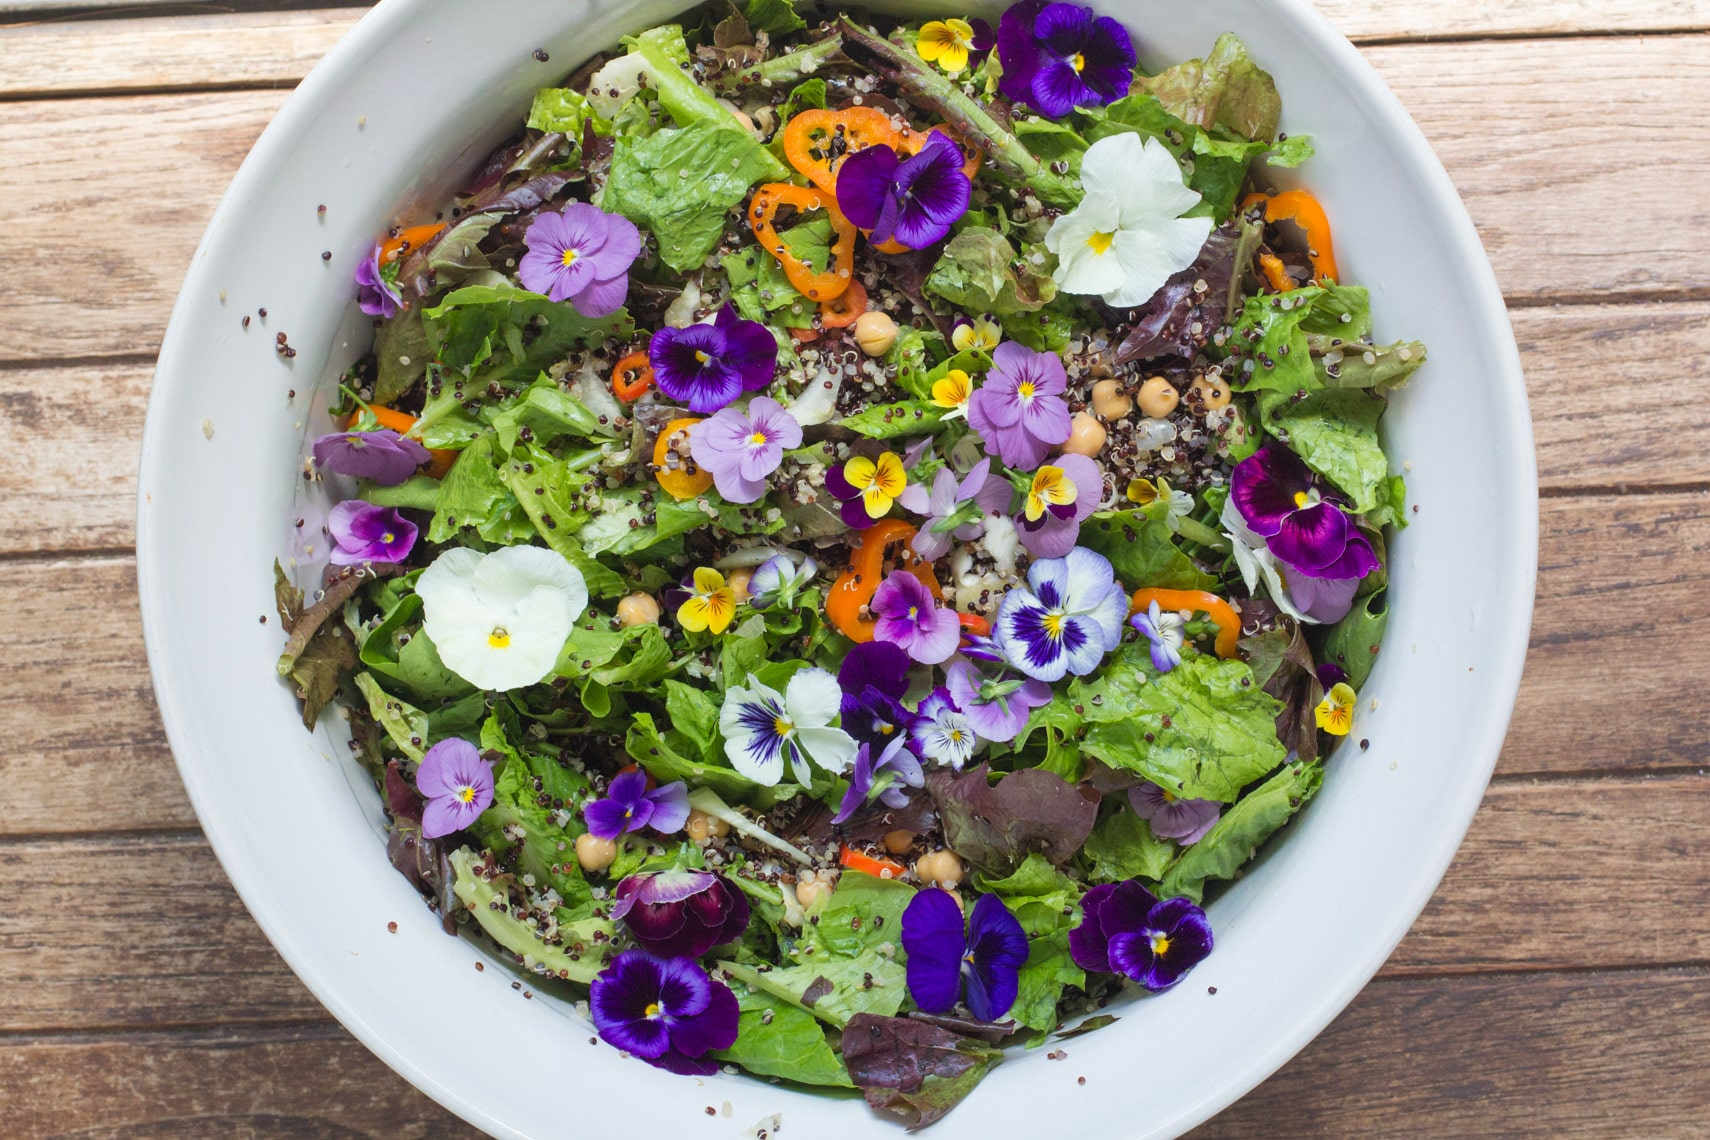 Greens and Grains Salad makes a vibrant bowl of yumminess.